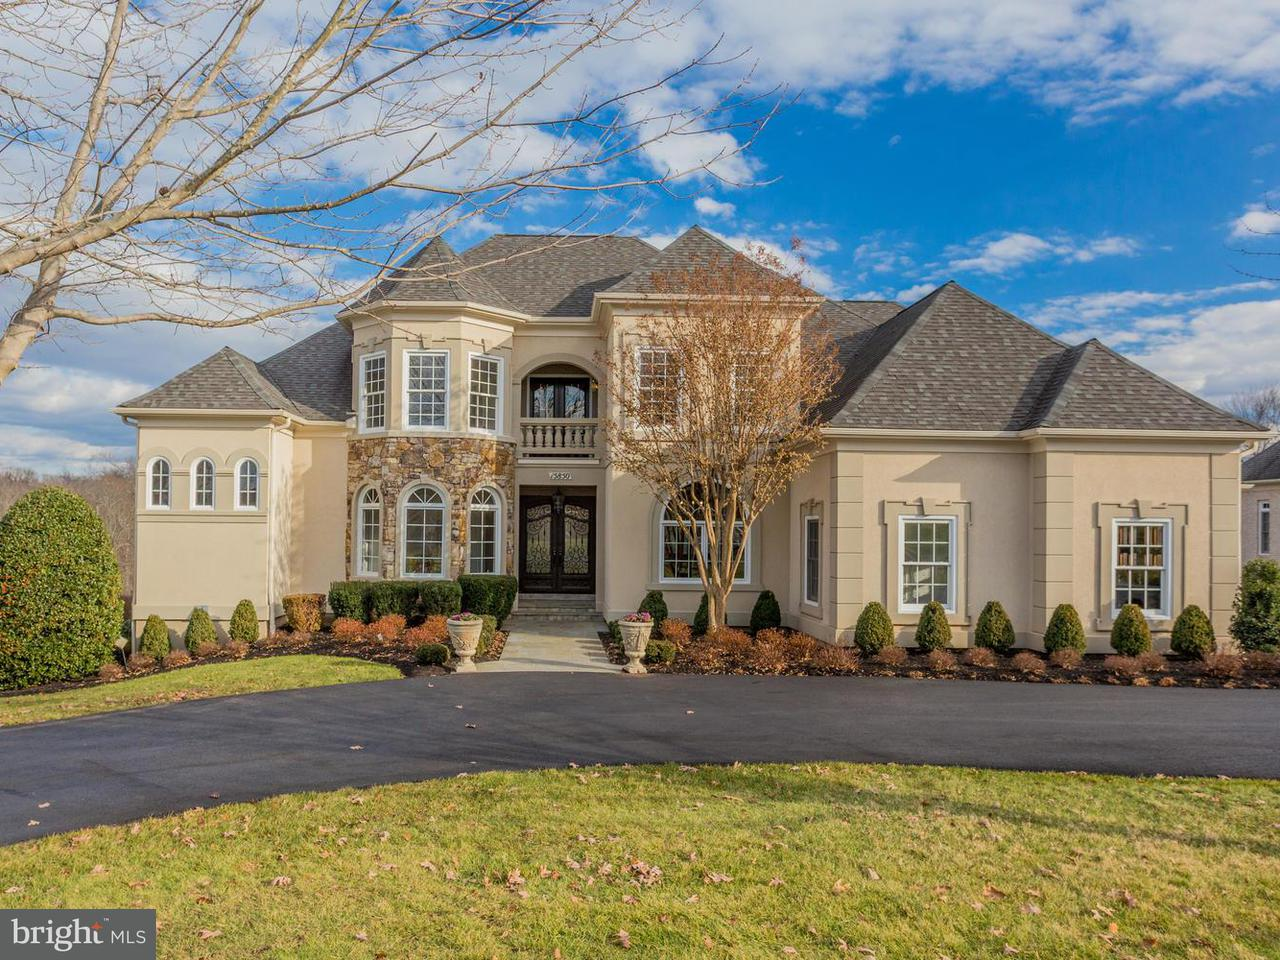 Single Family Home for Sale at 15850 Spyglass Hill Loop 15850 Spyglass Hill Loop Gainesville, Virginia 20155 United States